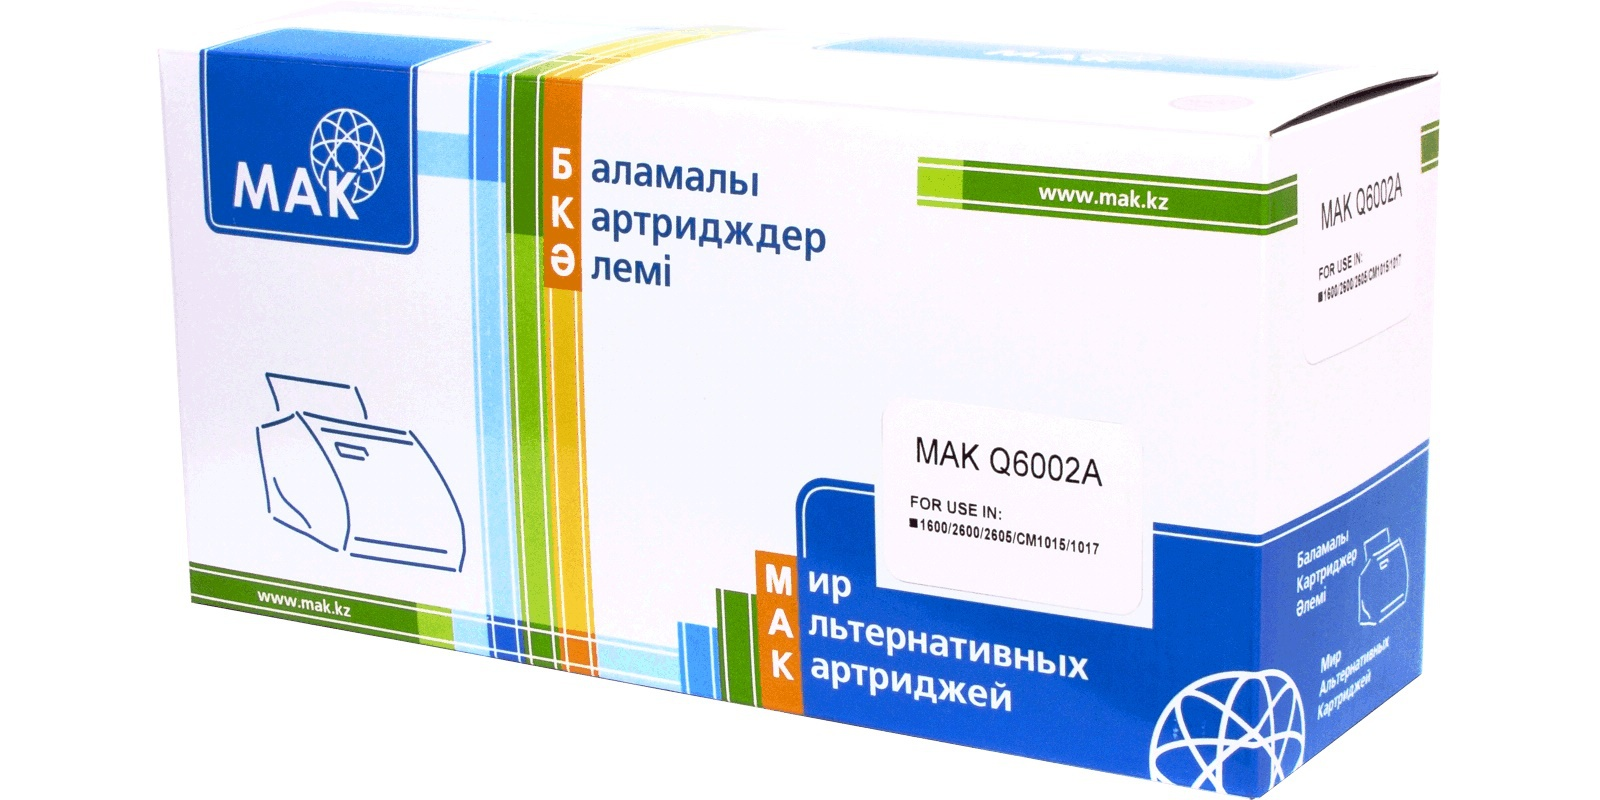 MAK №124A Q6002A CARTRIDGE-307/707/107, желтый (yellow), для HP